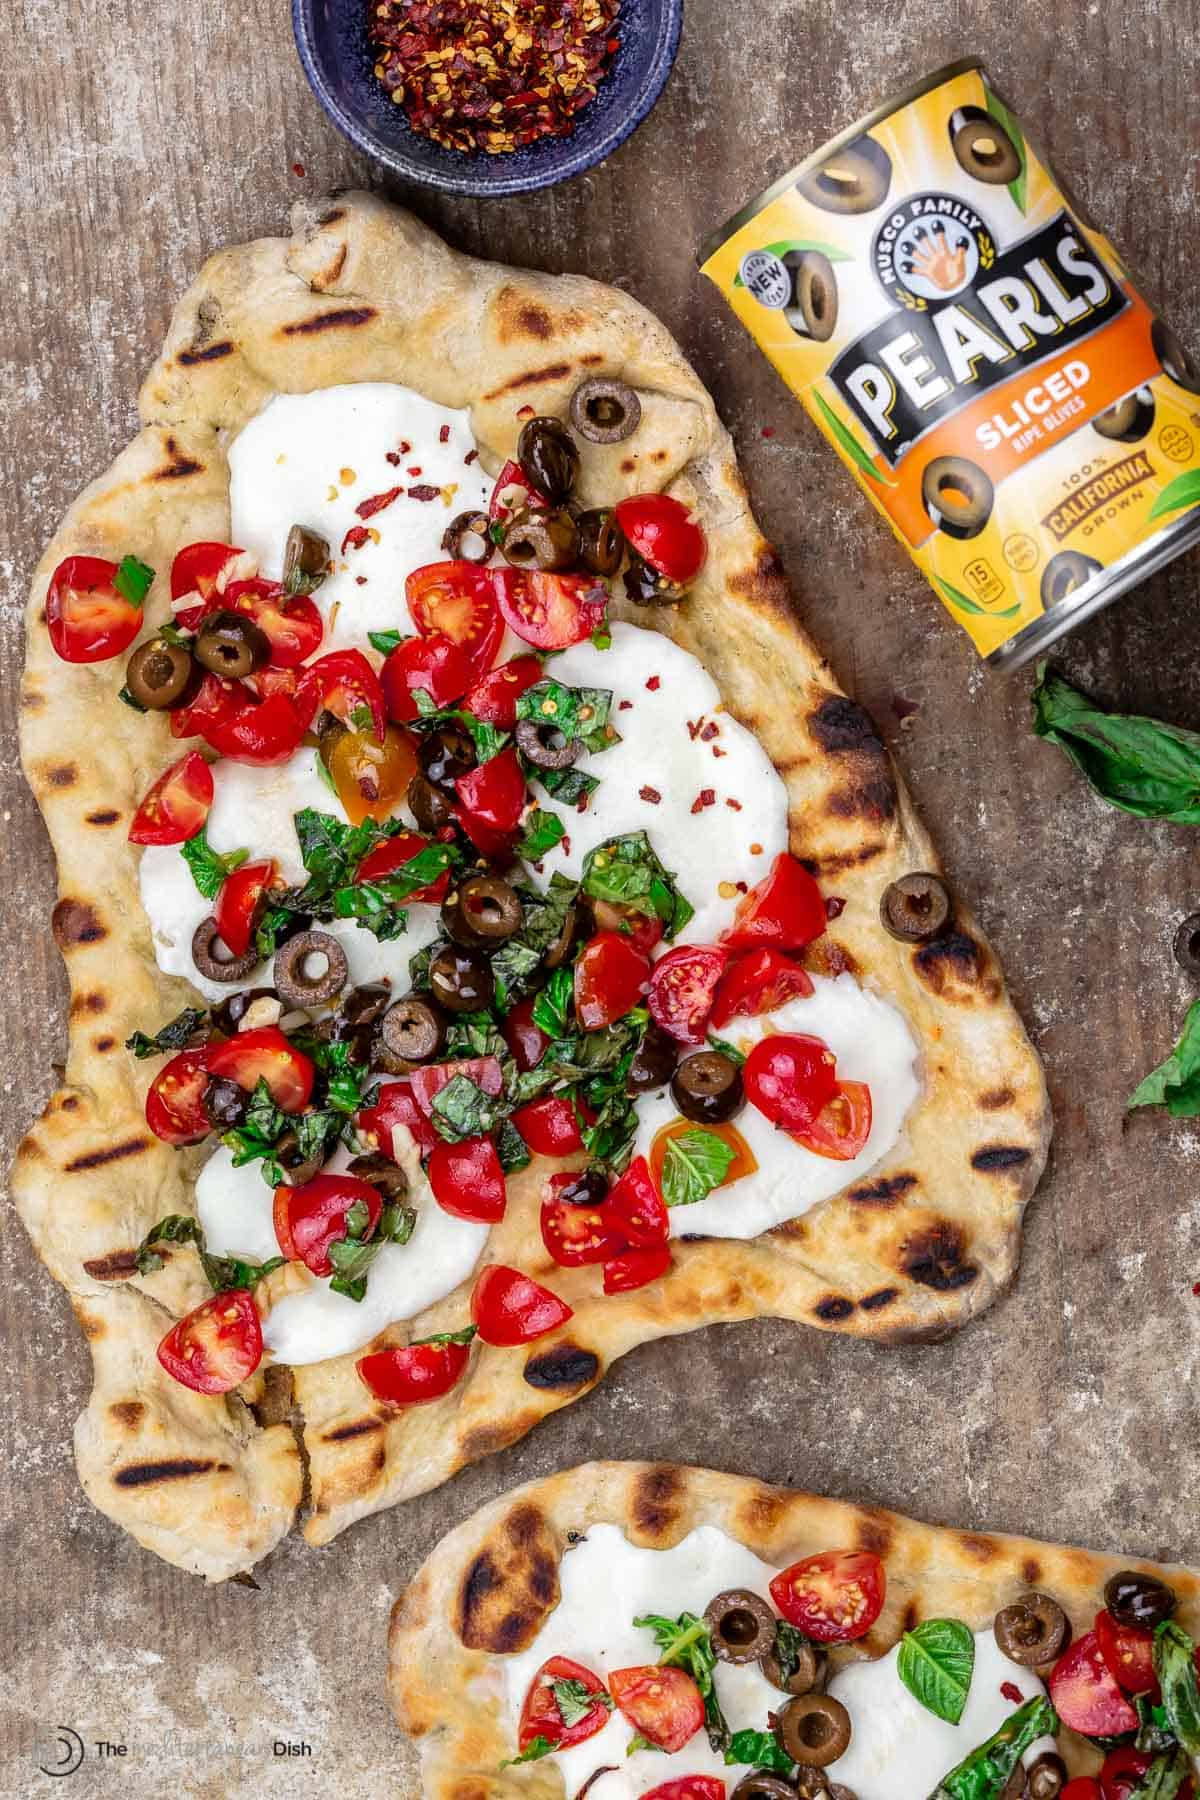 grilled pizza on wood board with a side of red pepper flakes and a can of Pearls Olives